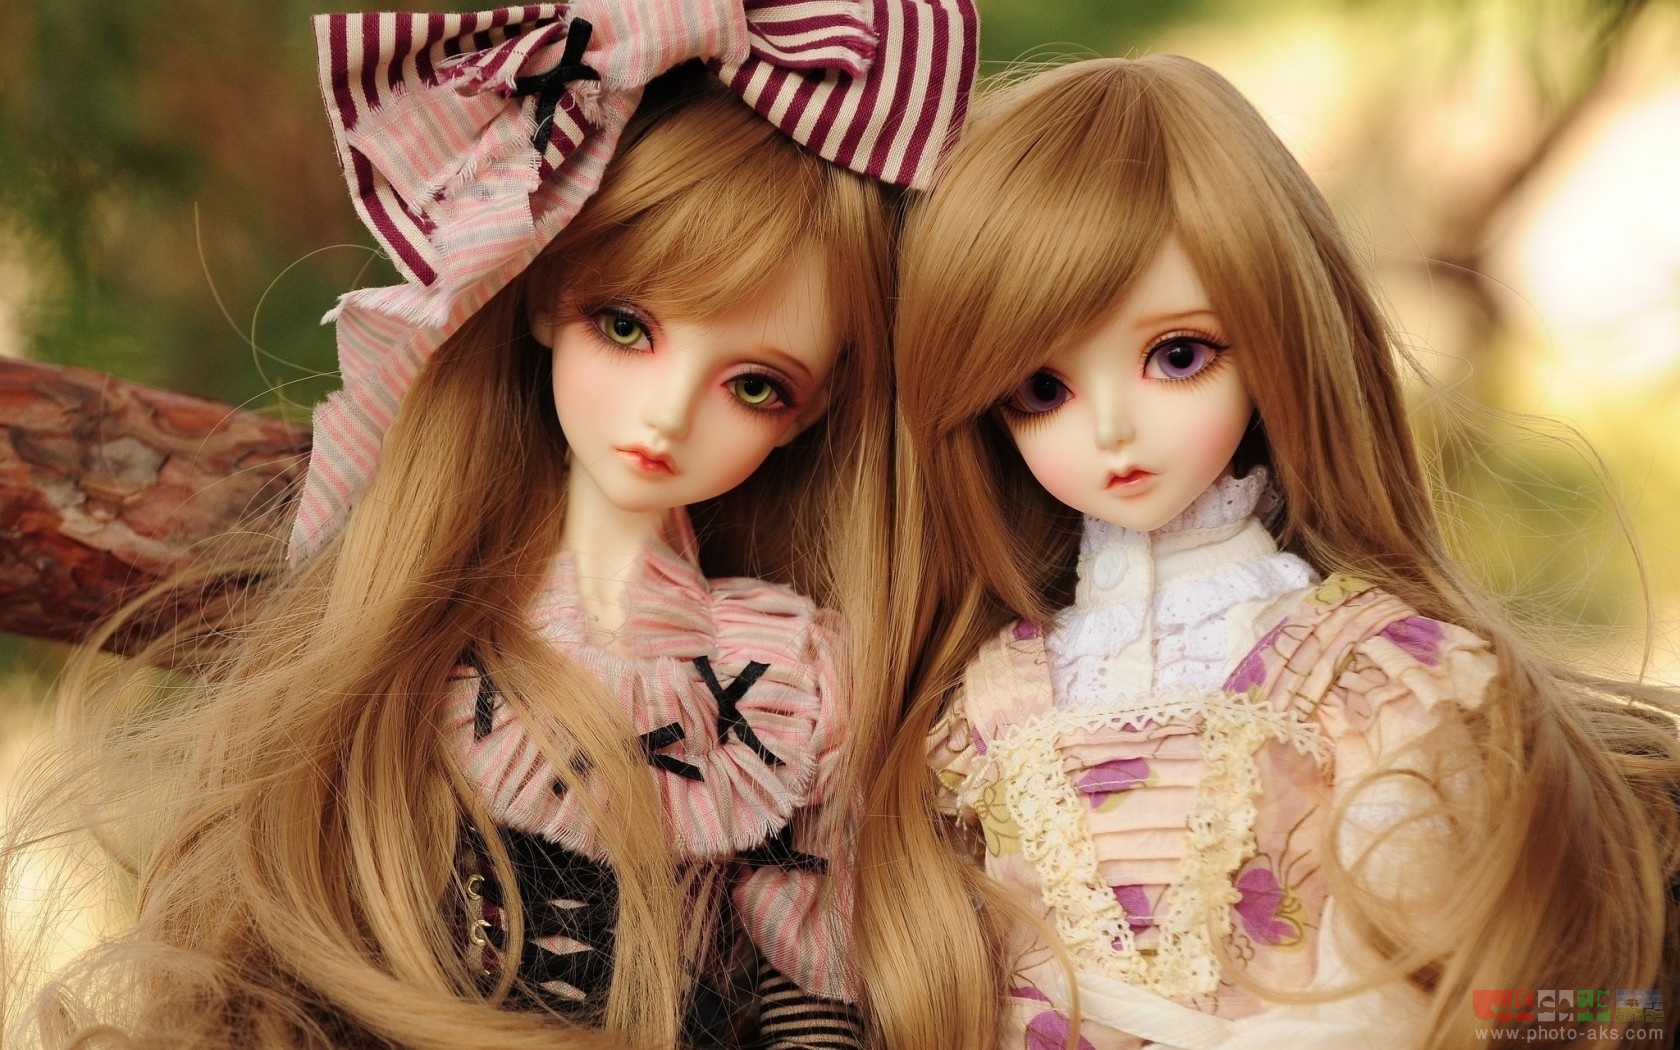 http://pic.photo-aks.com/photo/images/dolls/large/two_beautifull_girls_doll.jpg